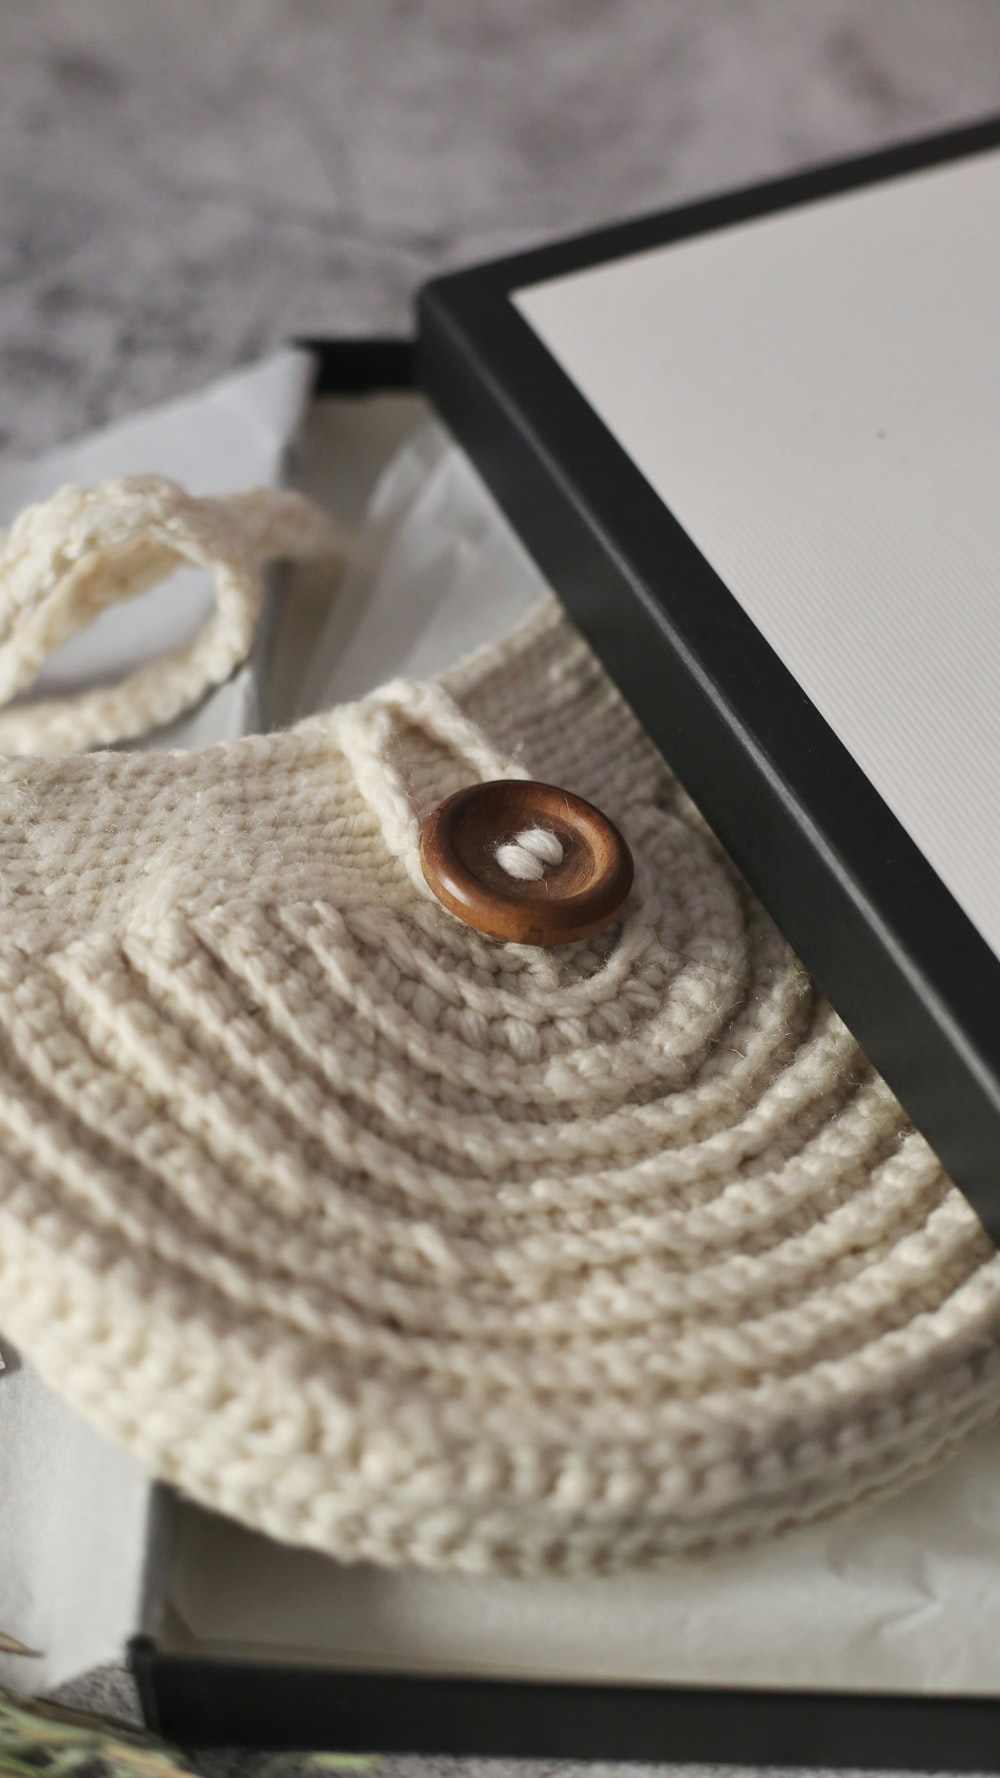 brown round ornament on white knit textile